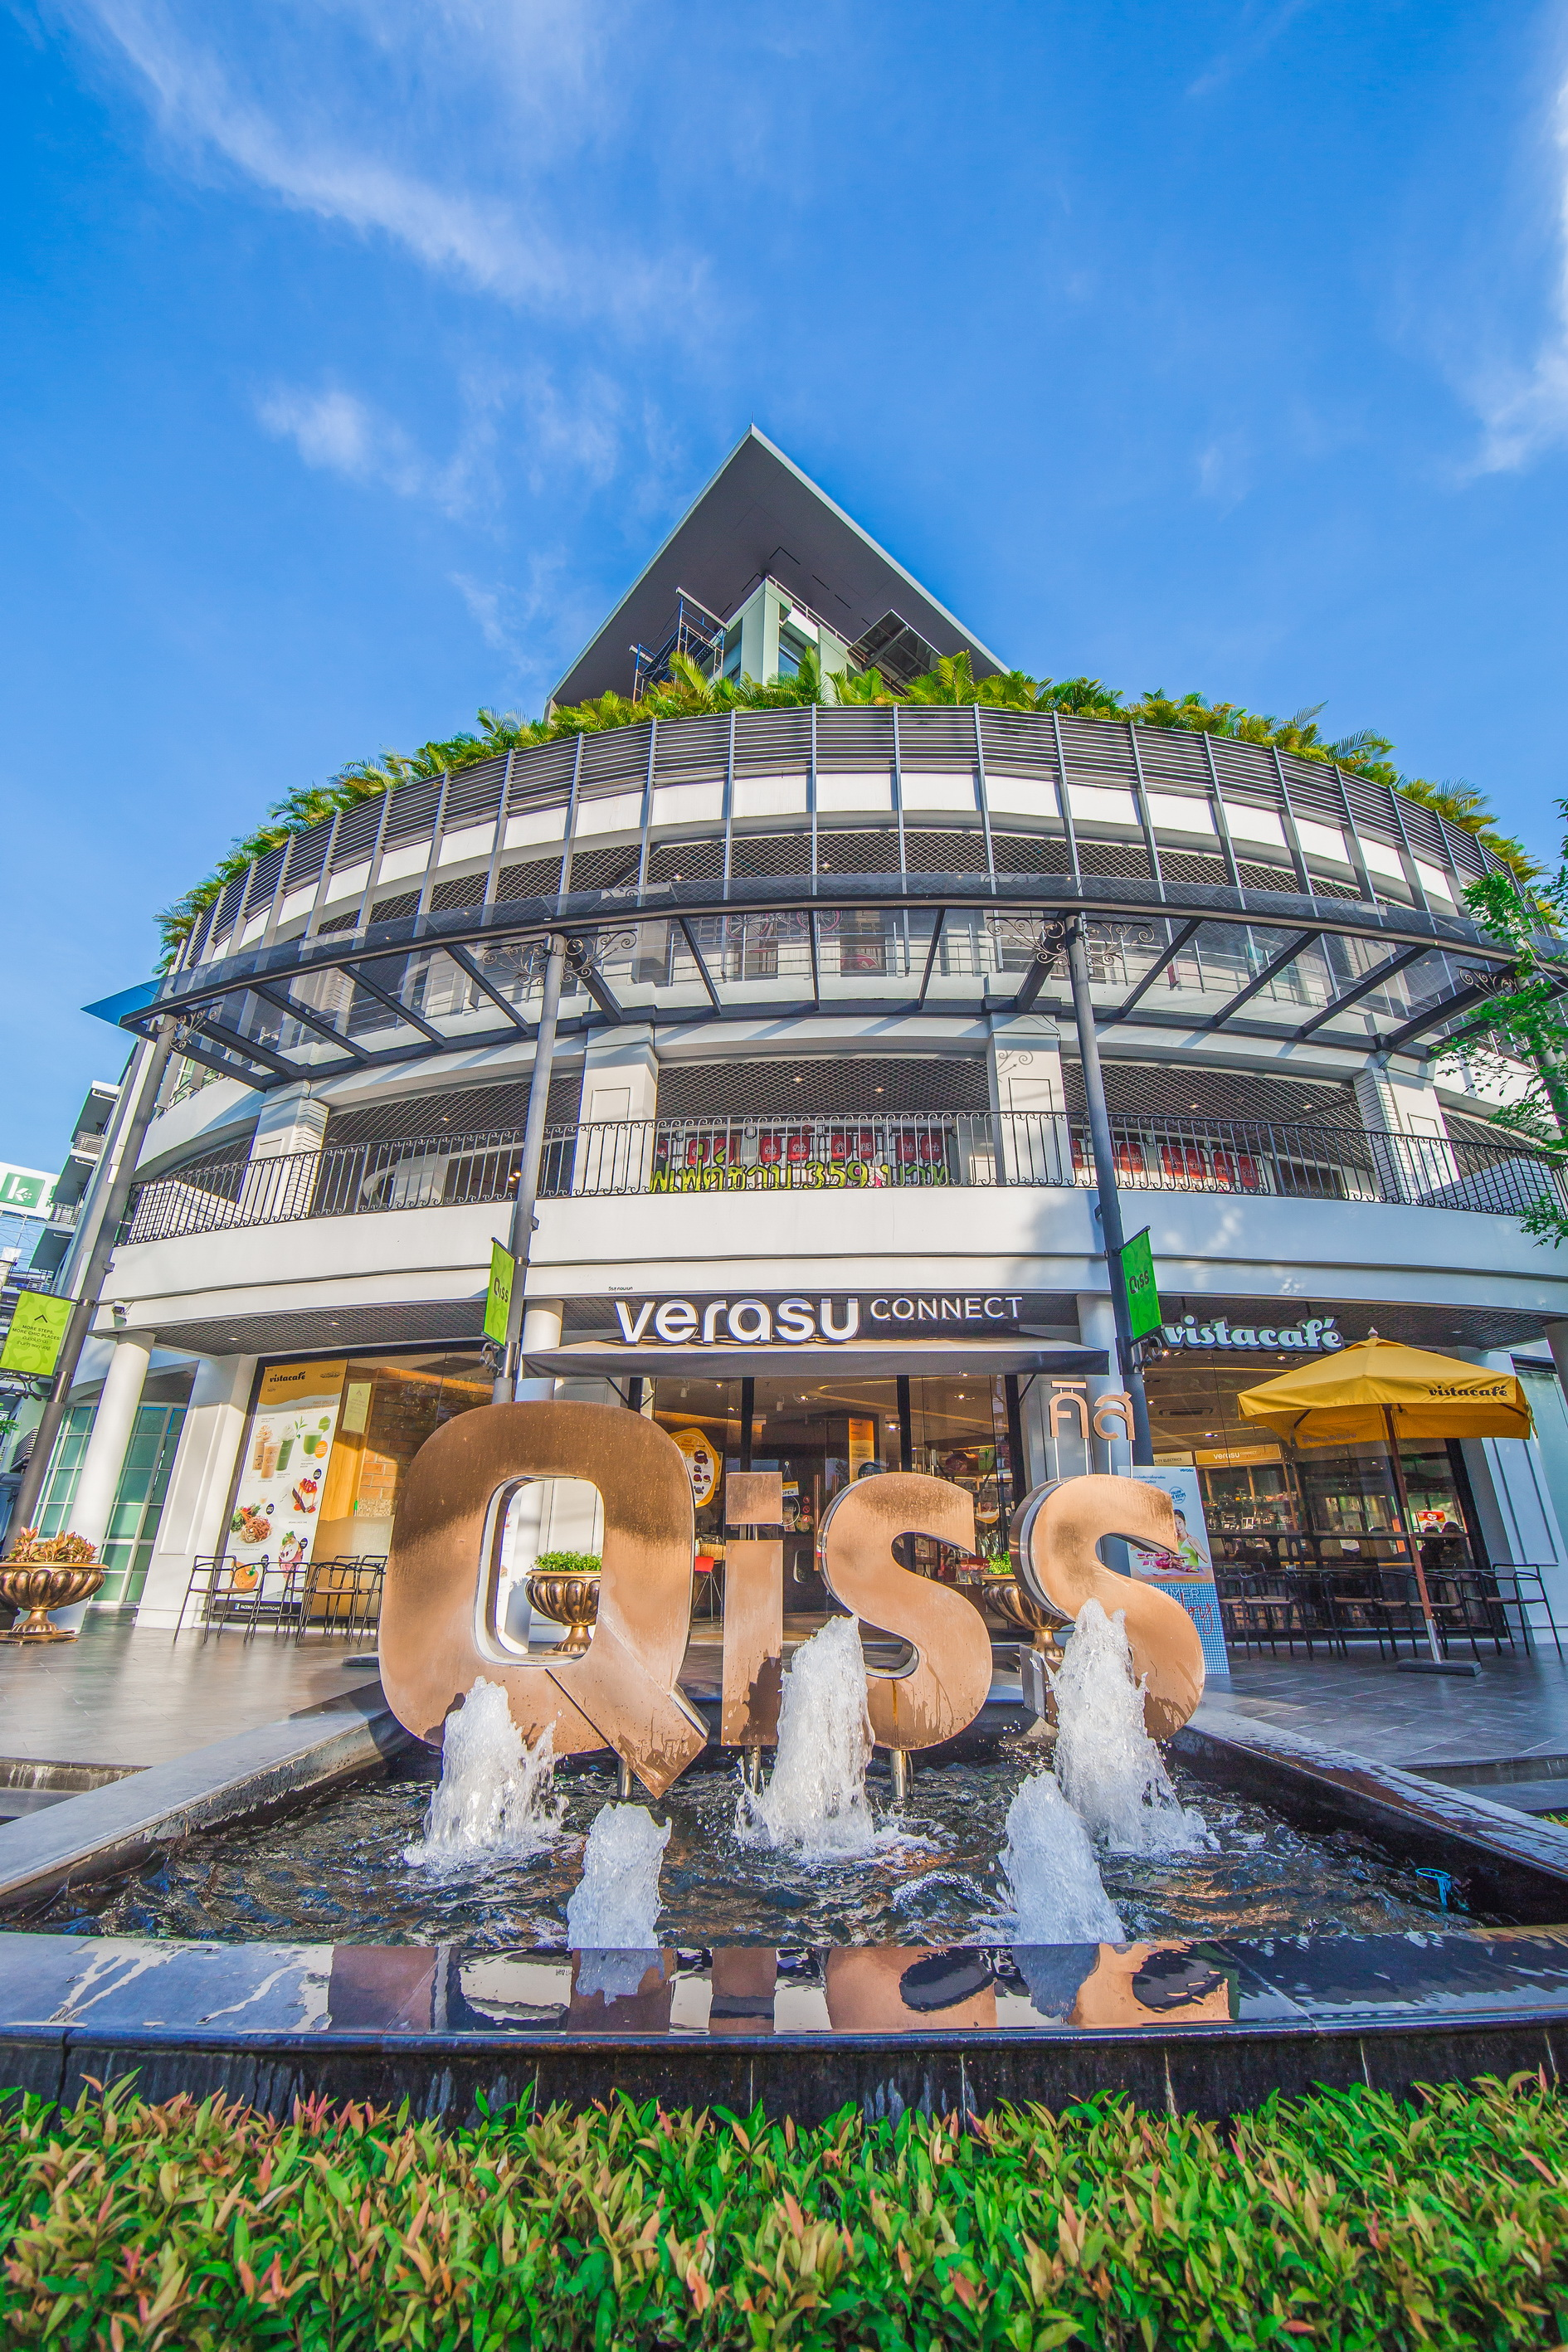 QiSS's Signage Front